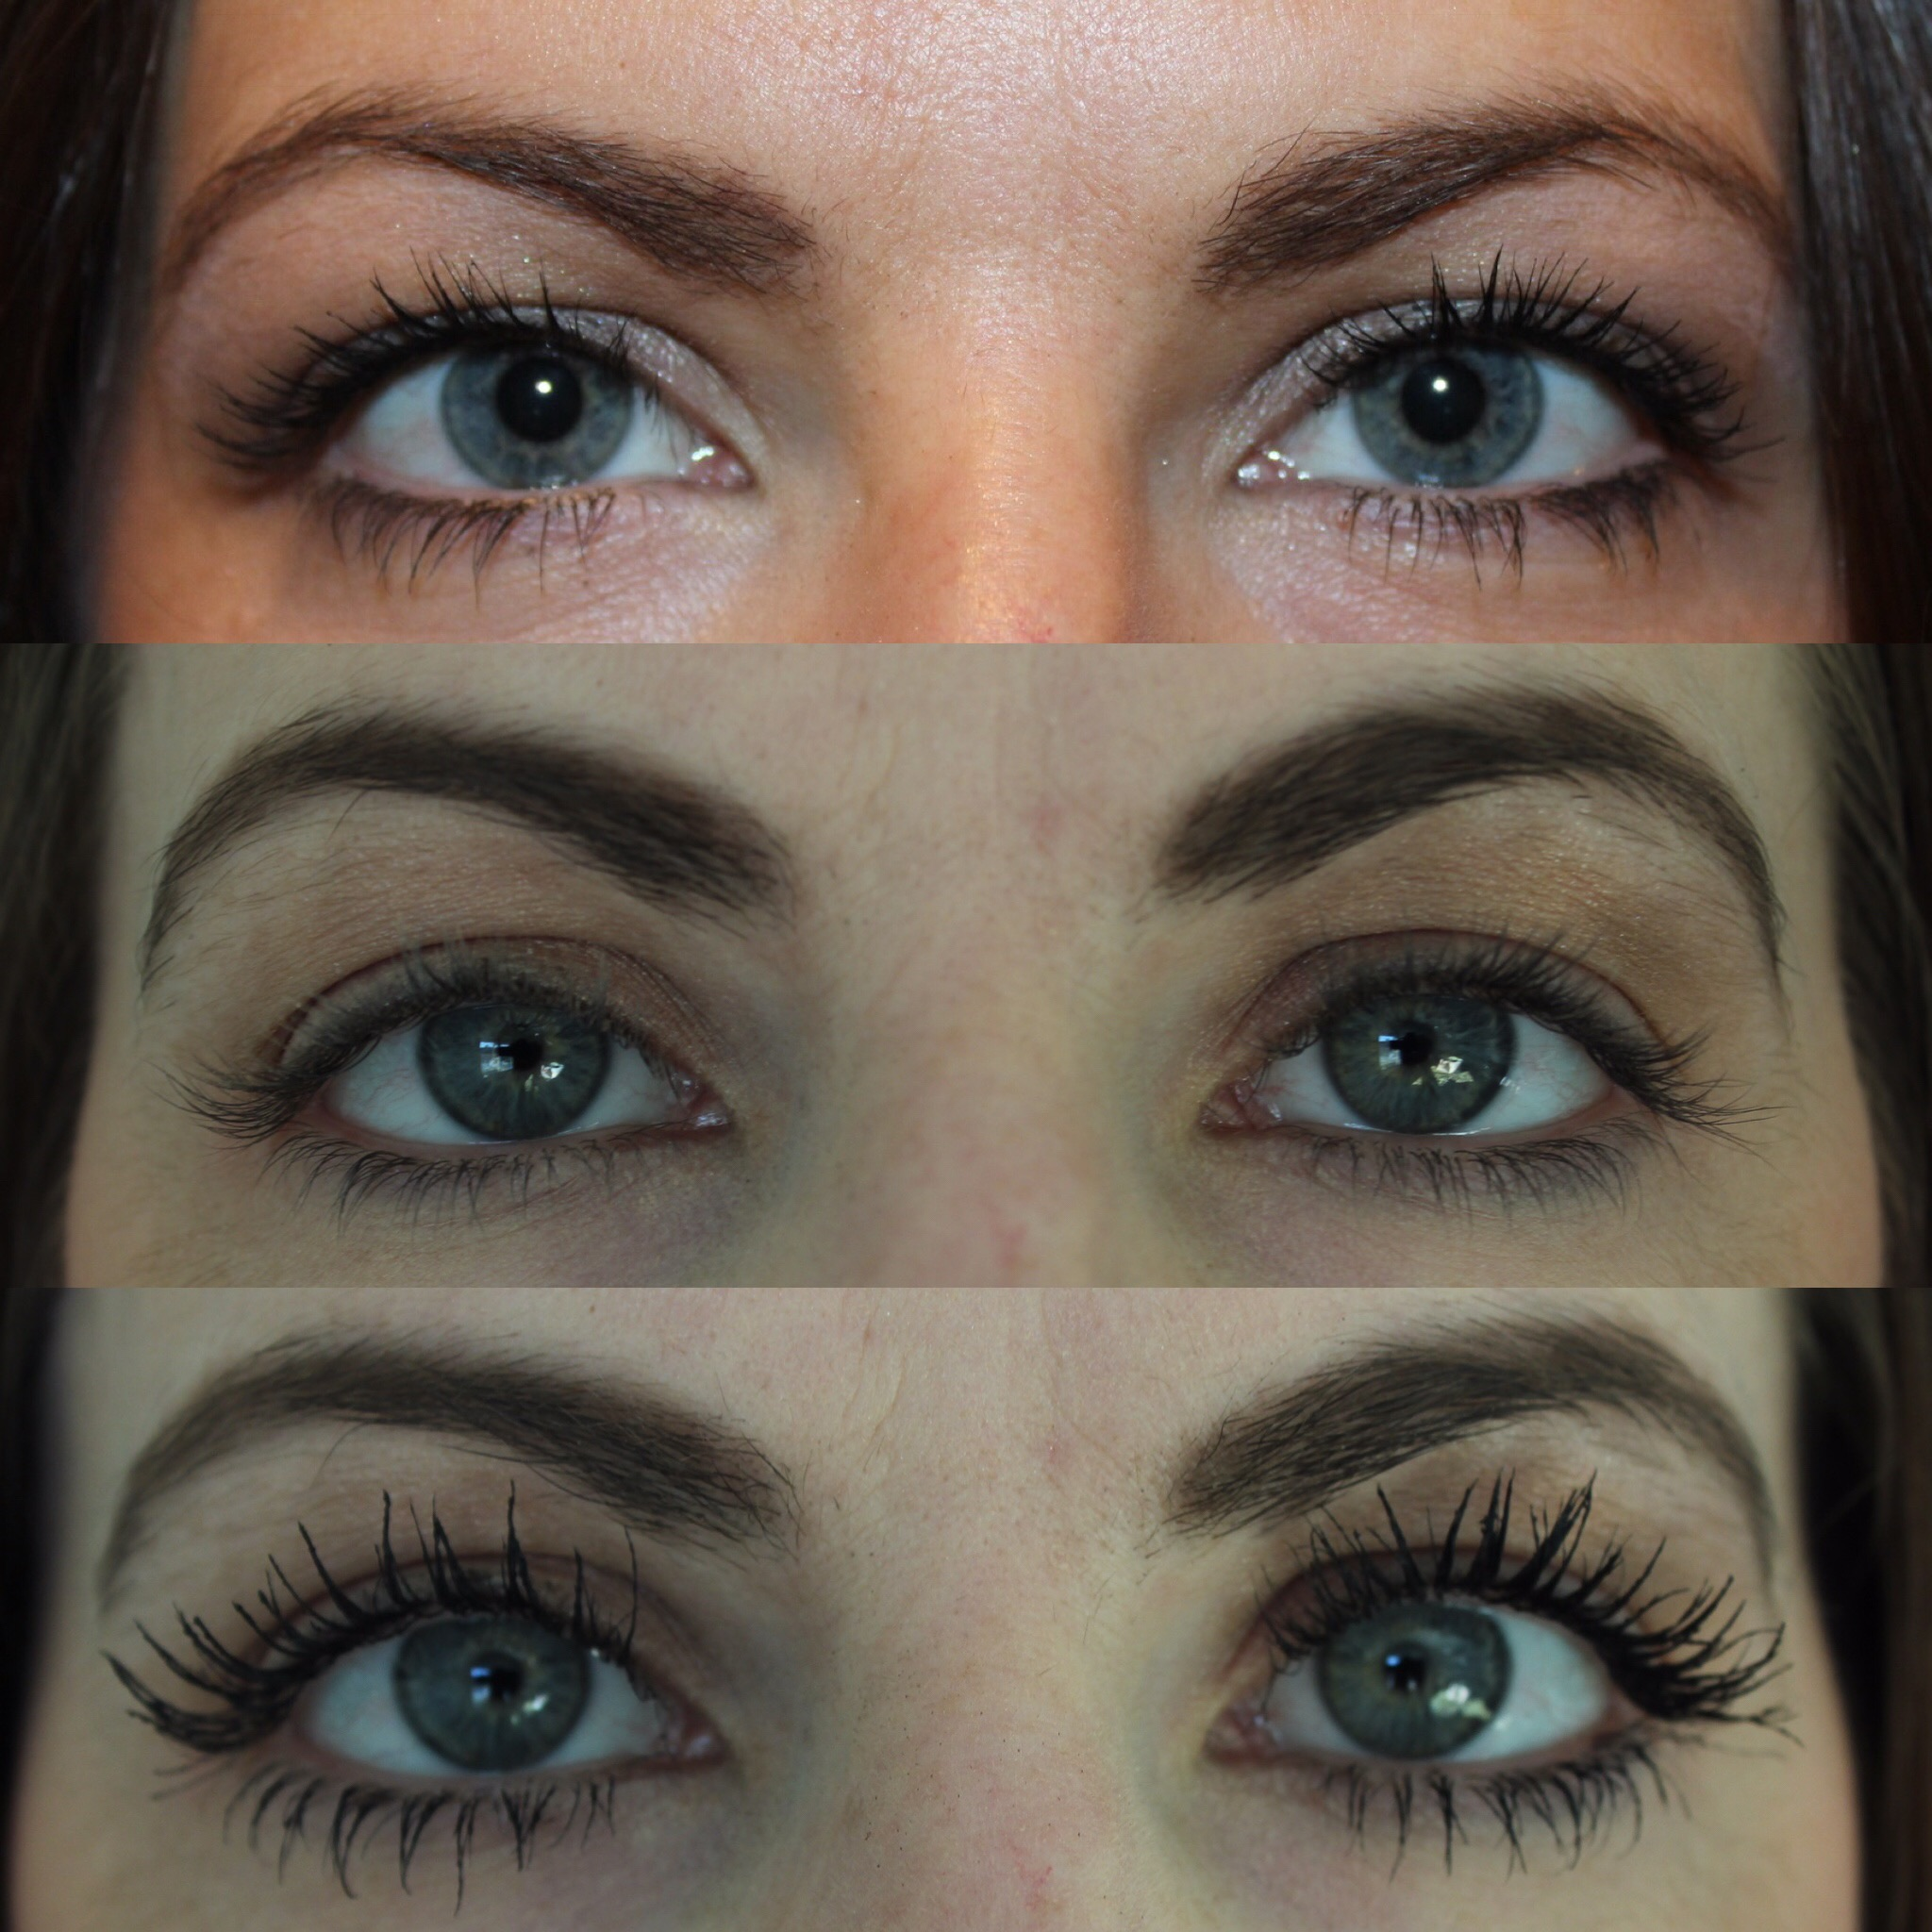 Rodanfields Lash Boost 12 Week Final Results The Foxy Kat